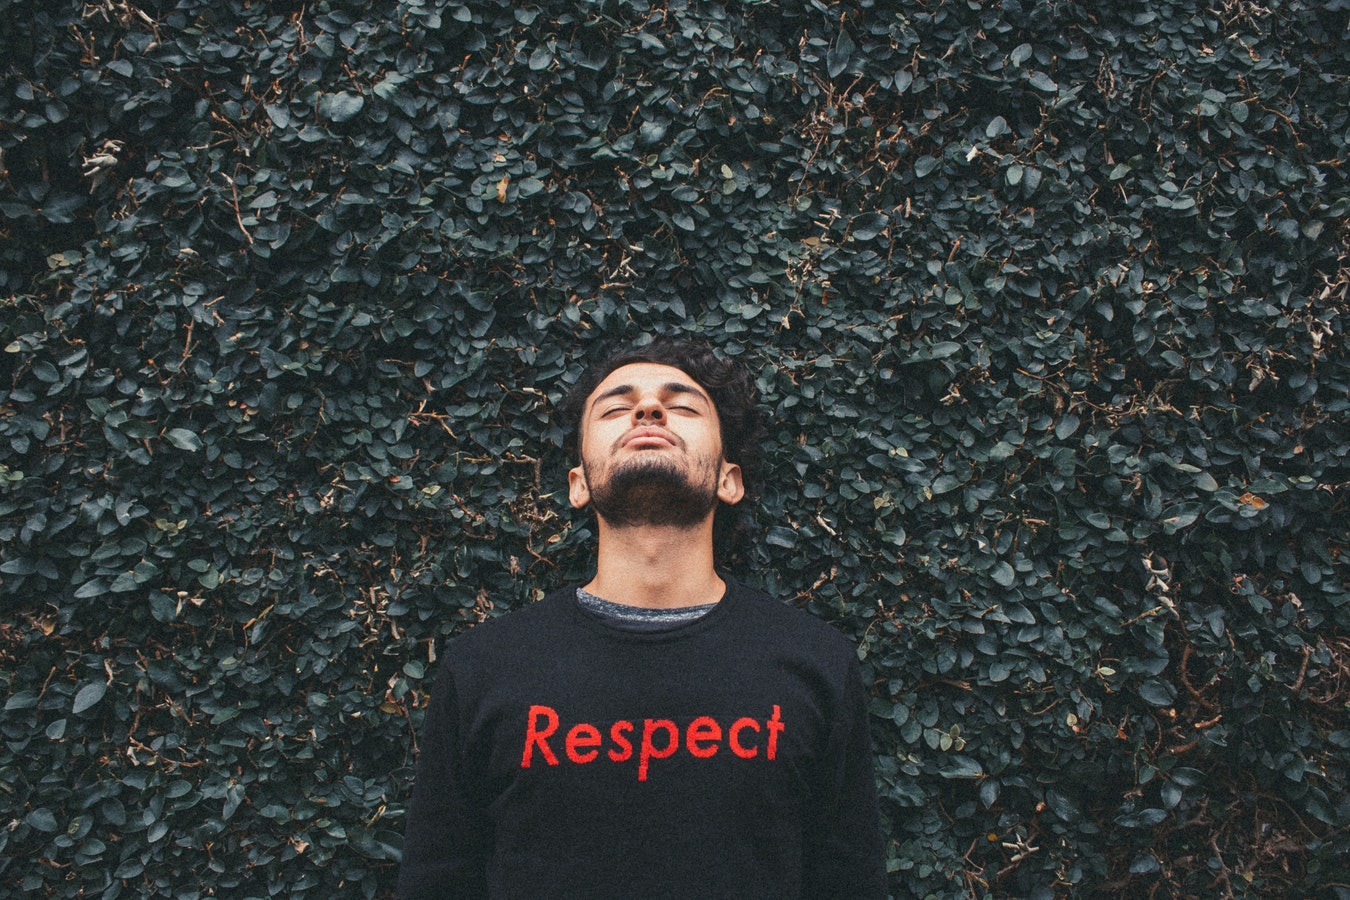 Desiring Human Respect Can Lead to Hell